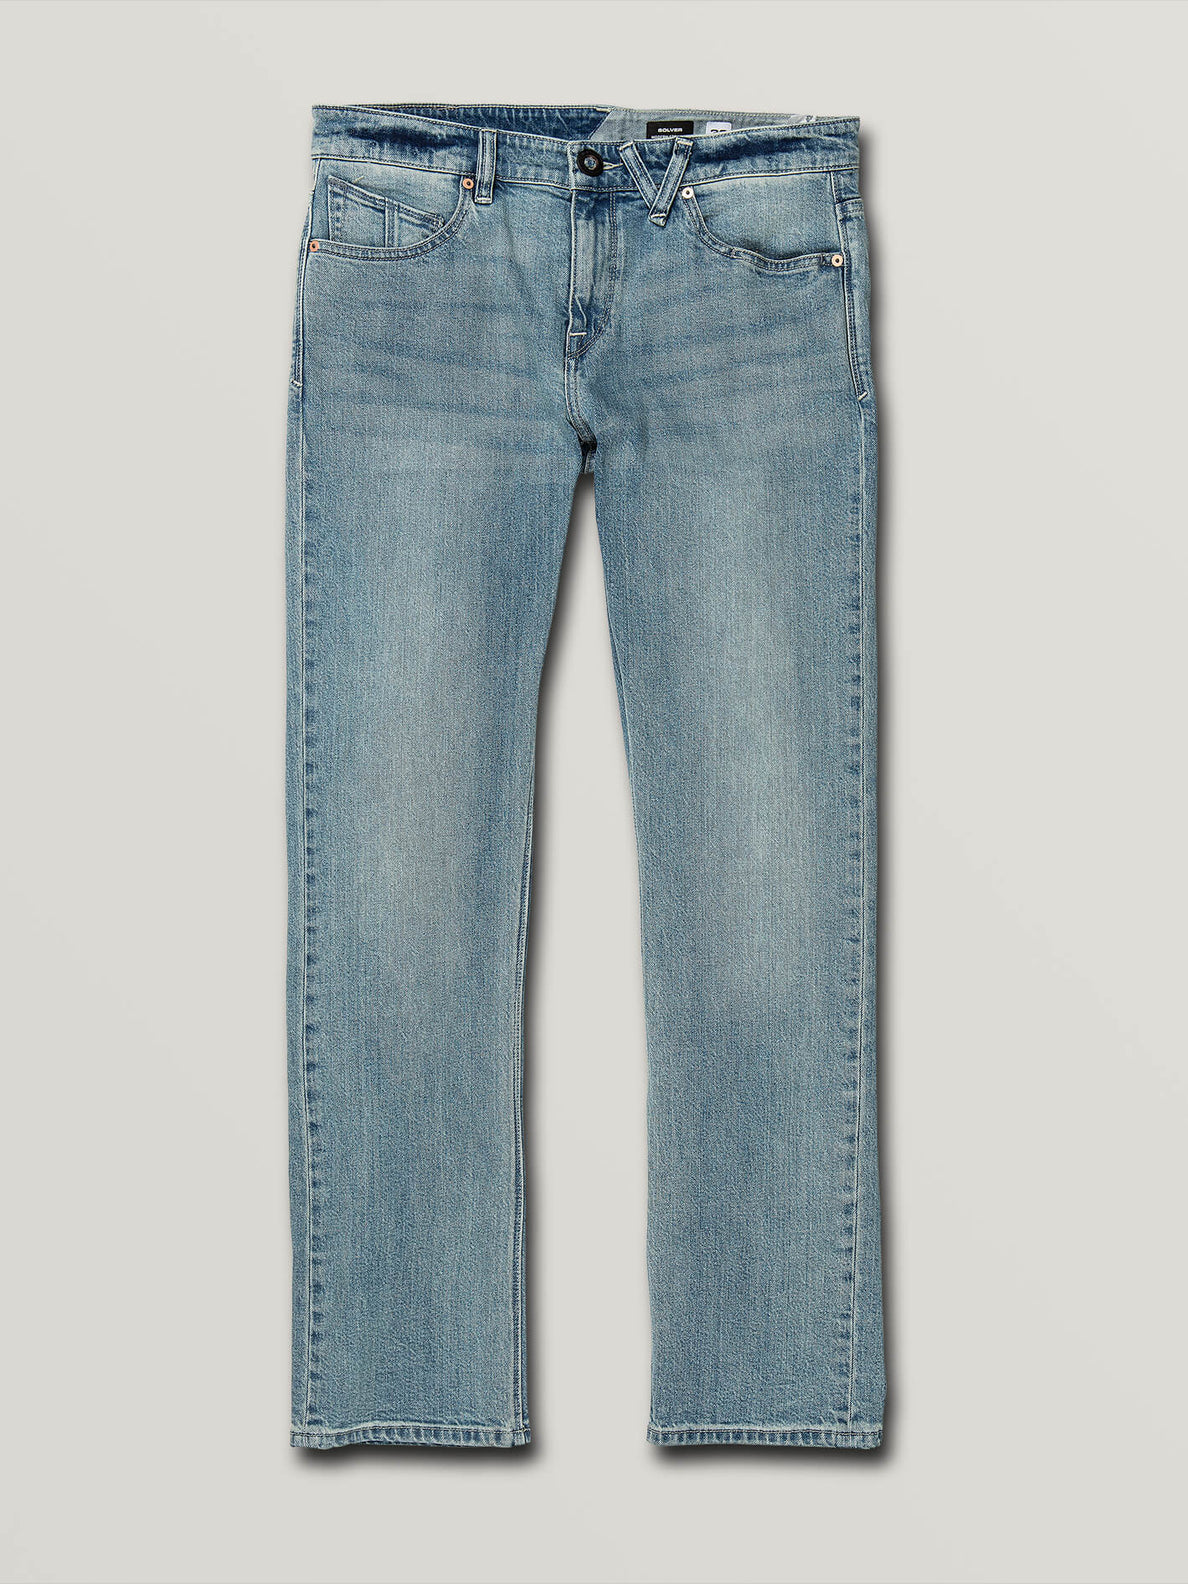 Solver Modern Fit Jeans - Wide Goods Light (A1931503_WGL) [F]